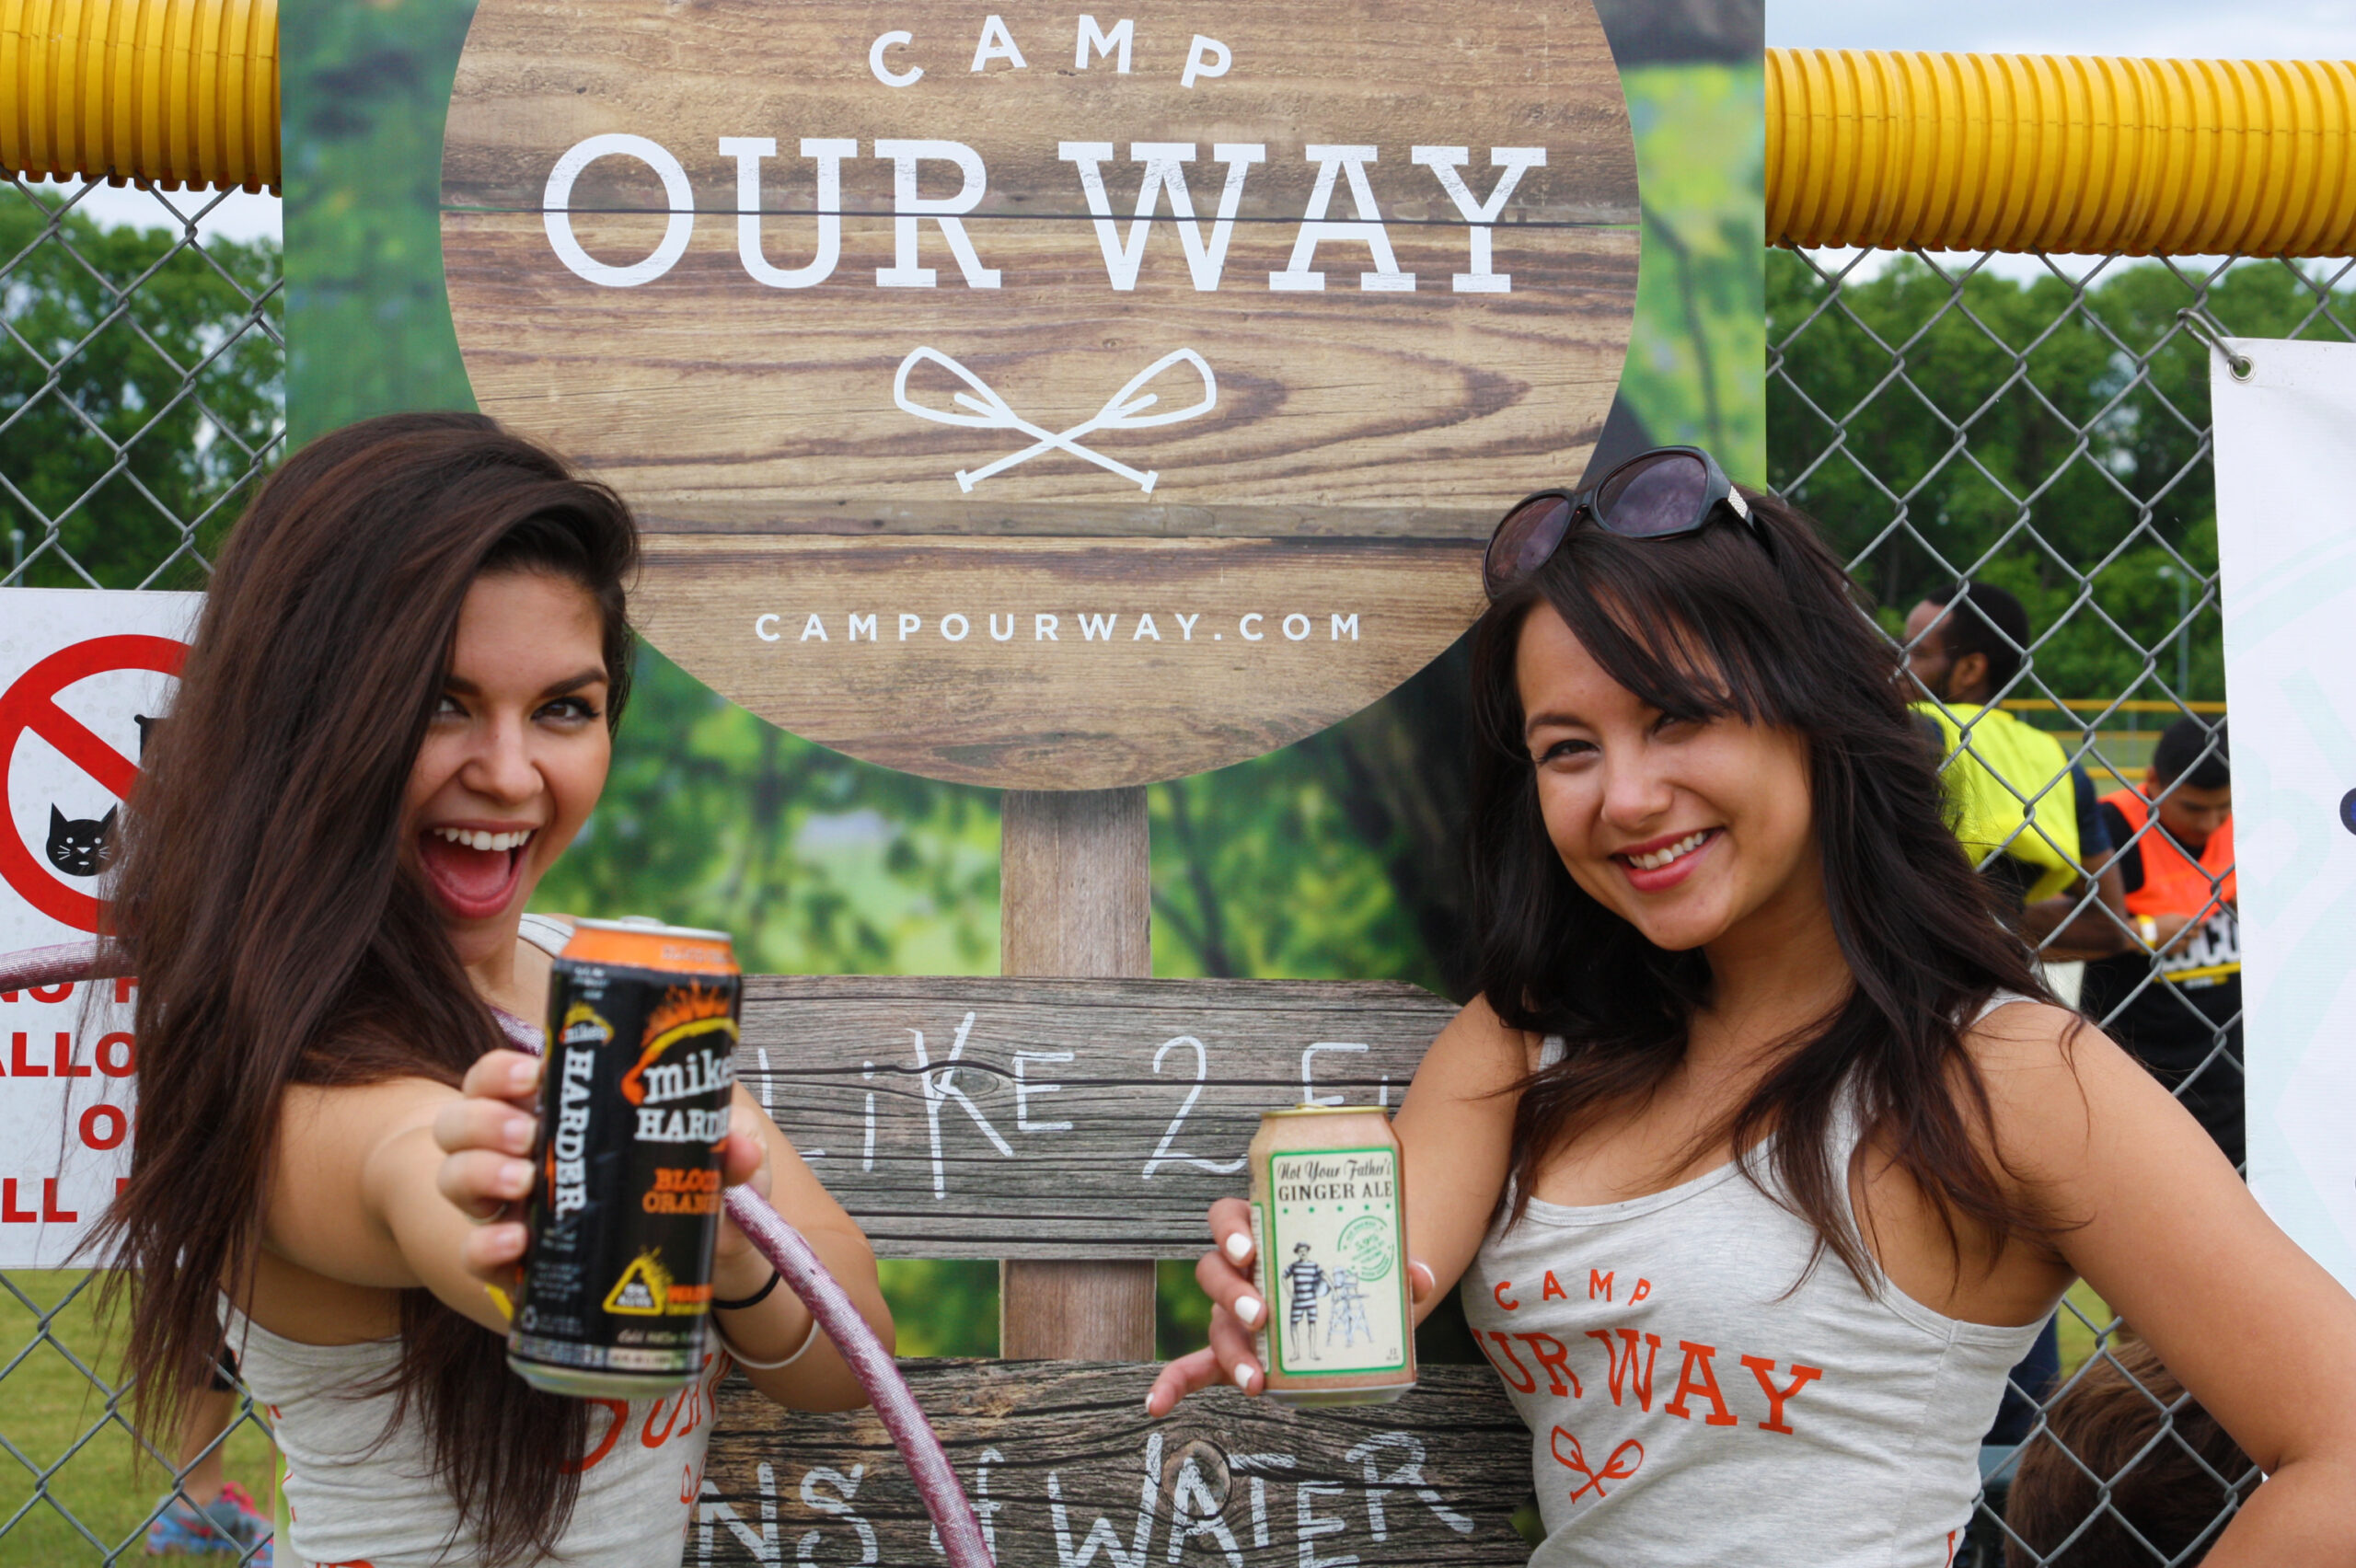 Camp Our Way Alcohol for Adults